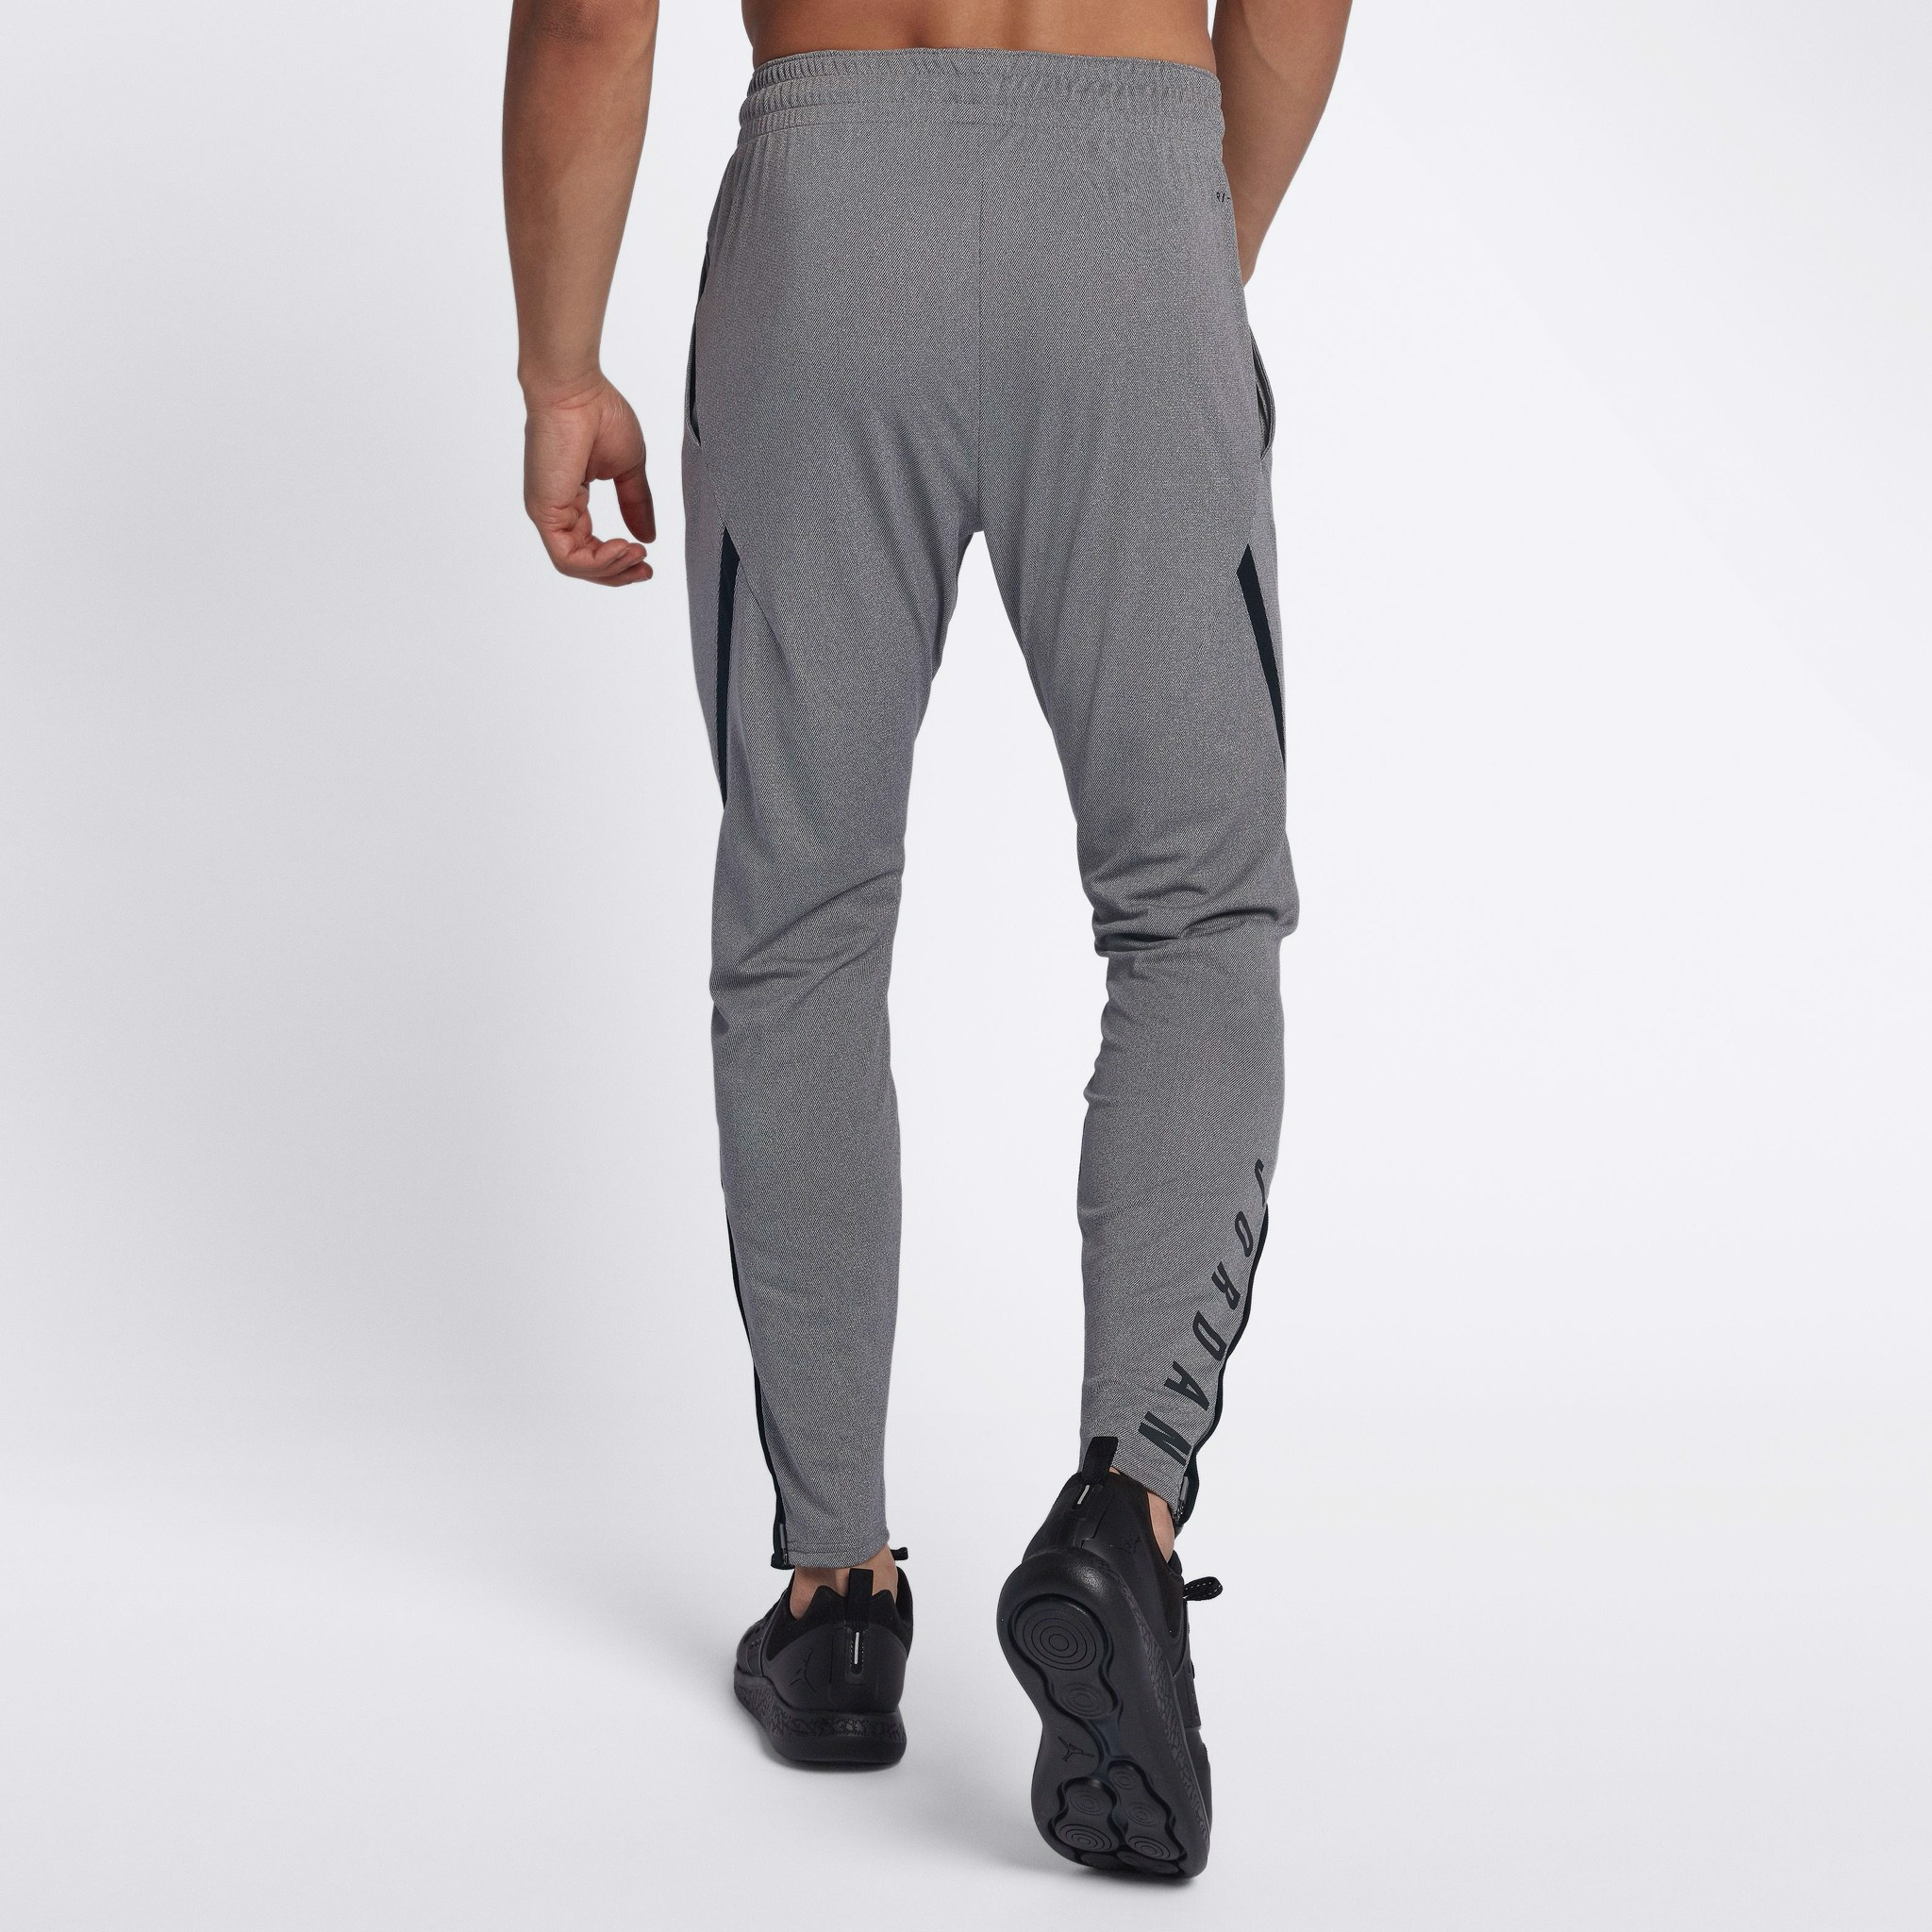 Jordan Dri-FIT 23 Alpha Basketball Pants 'Grey'